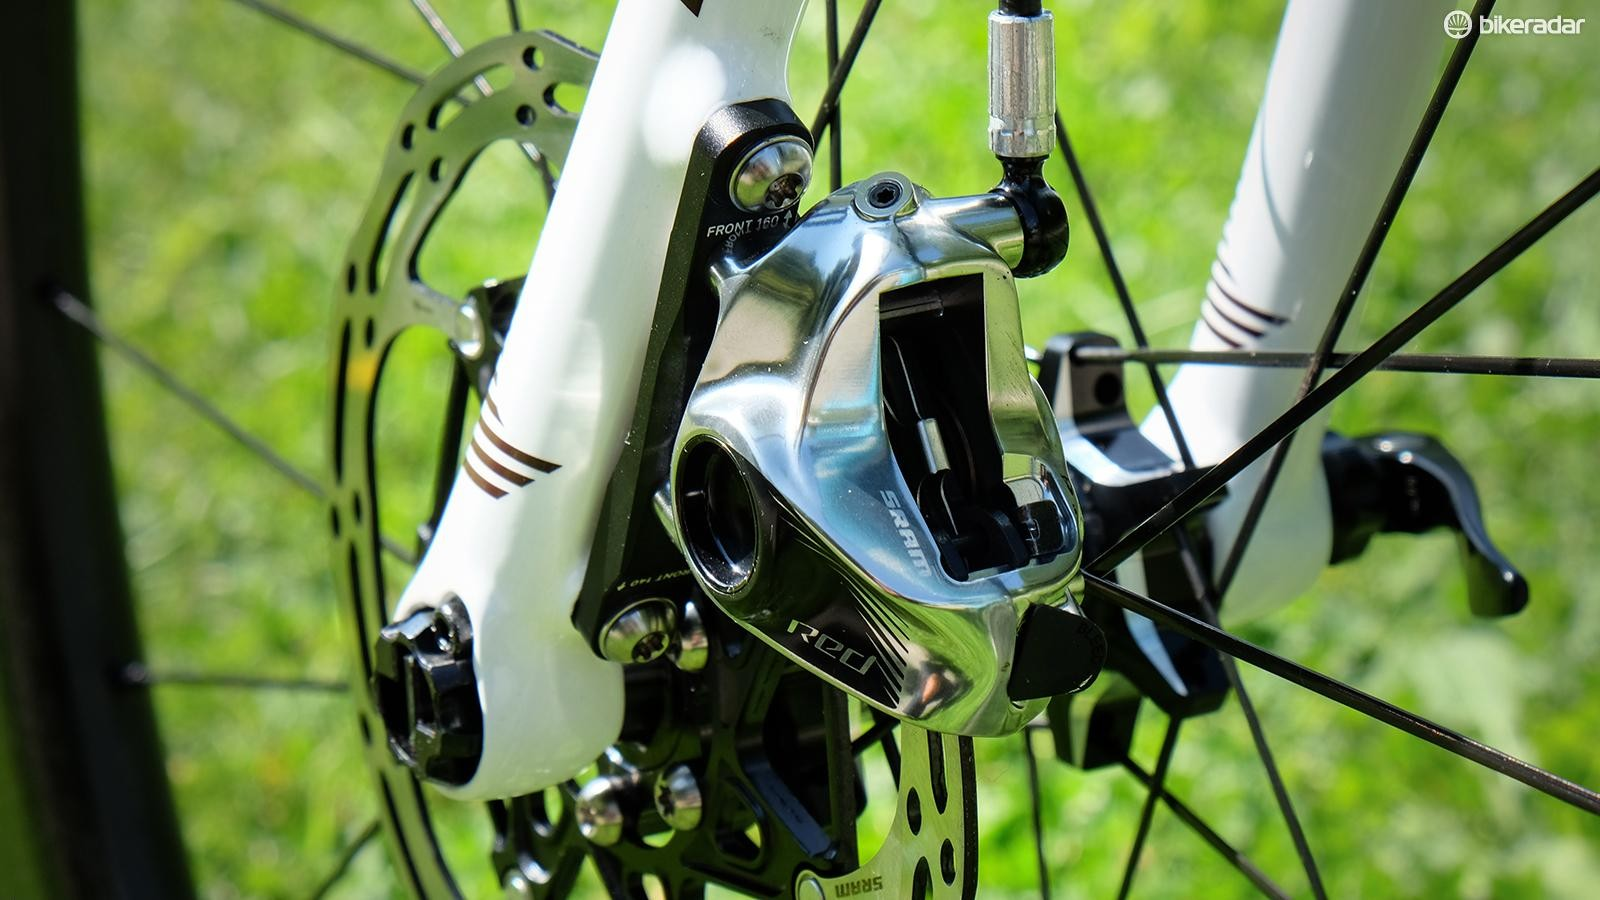 SRAM Red eTap HRD uses the same lightweight calipers as the company's Level mountain bike brakes